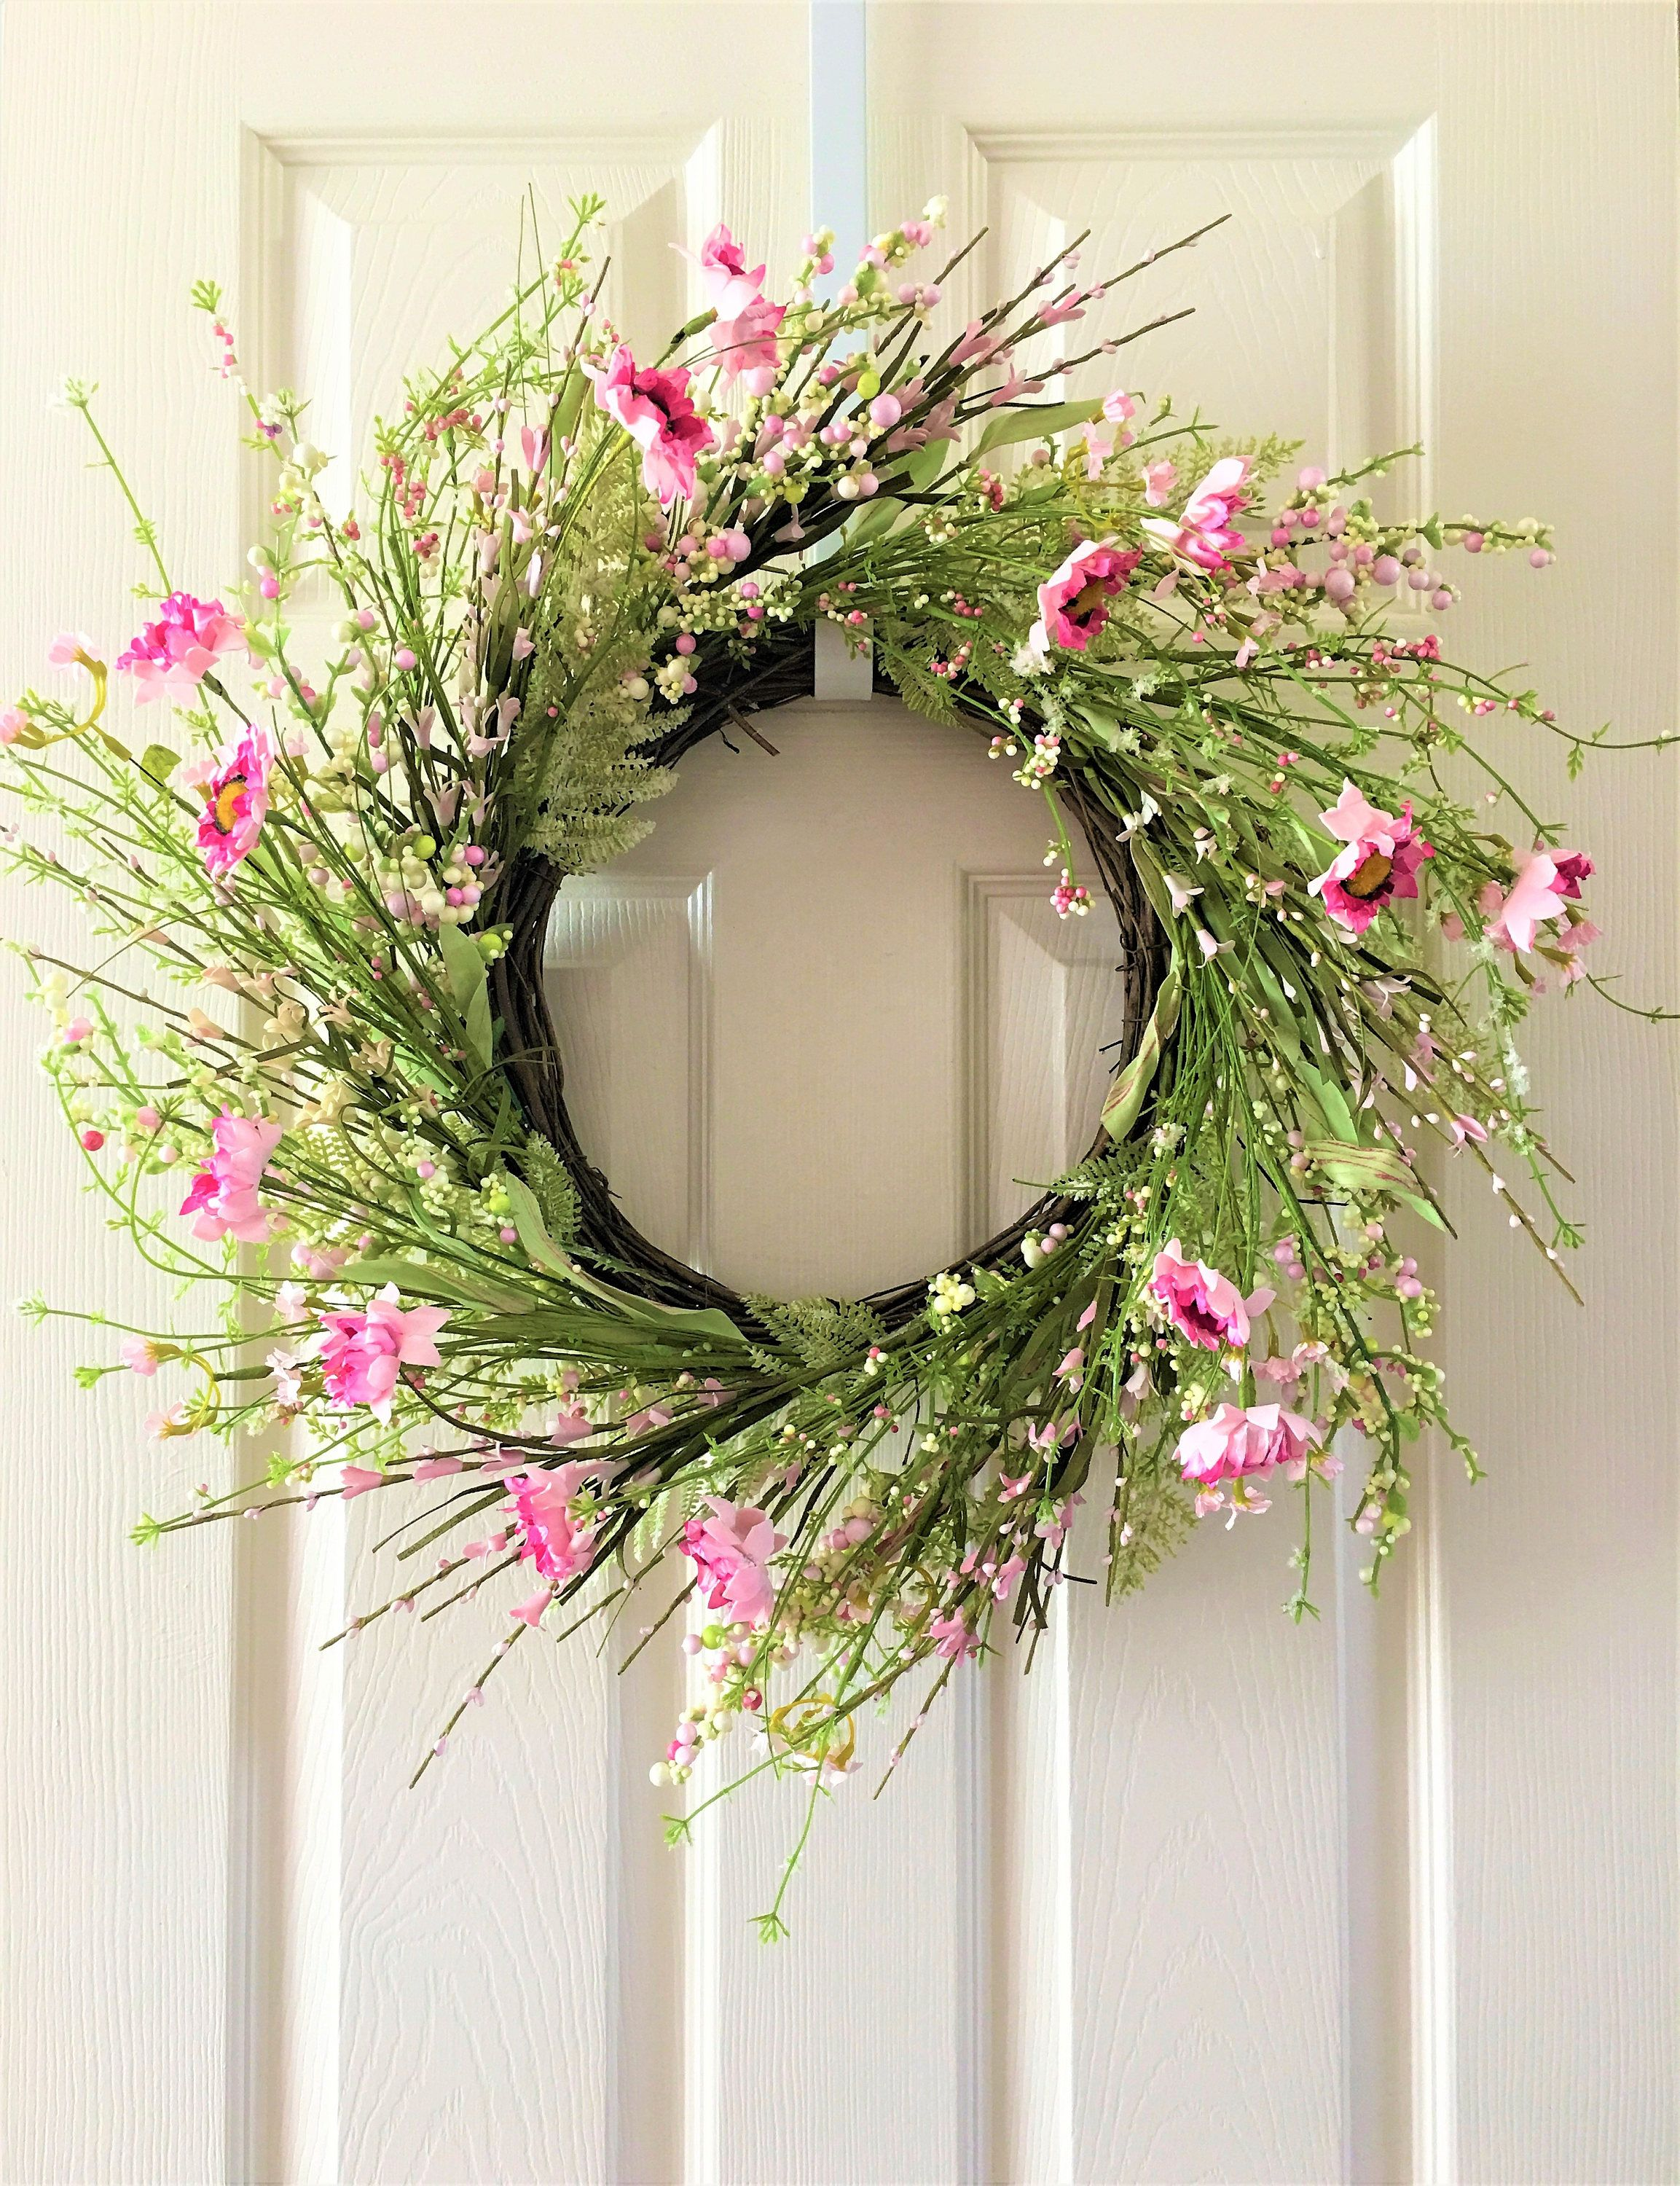 Spring Wreath For Front Door Flower Berry Summer Everyday By H2hcreation On Etsy